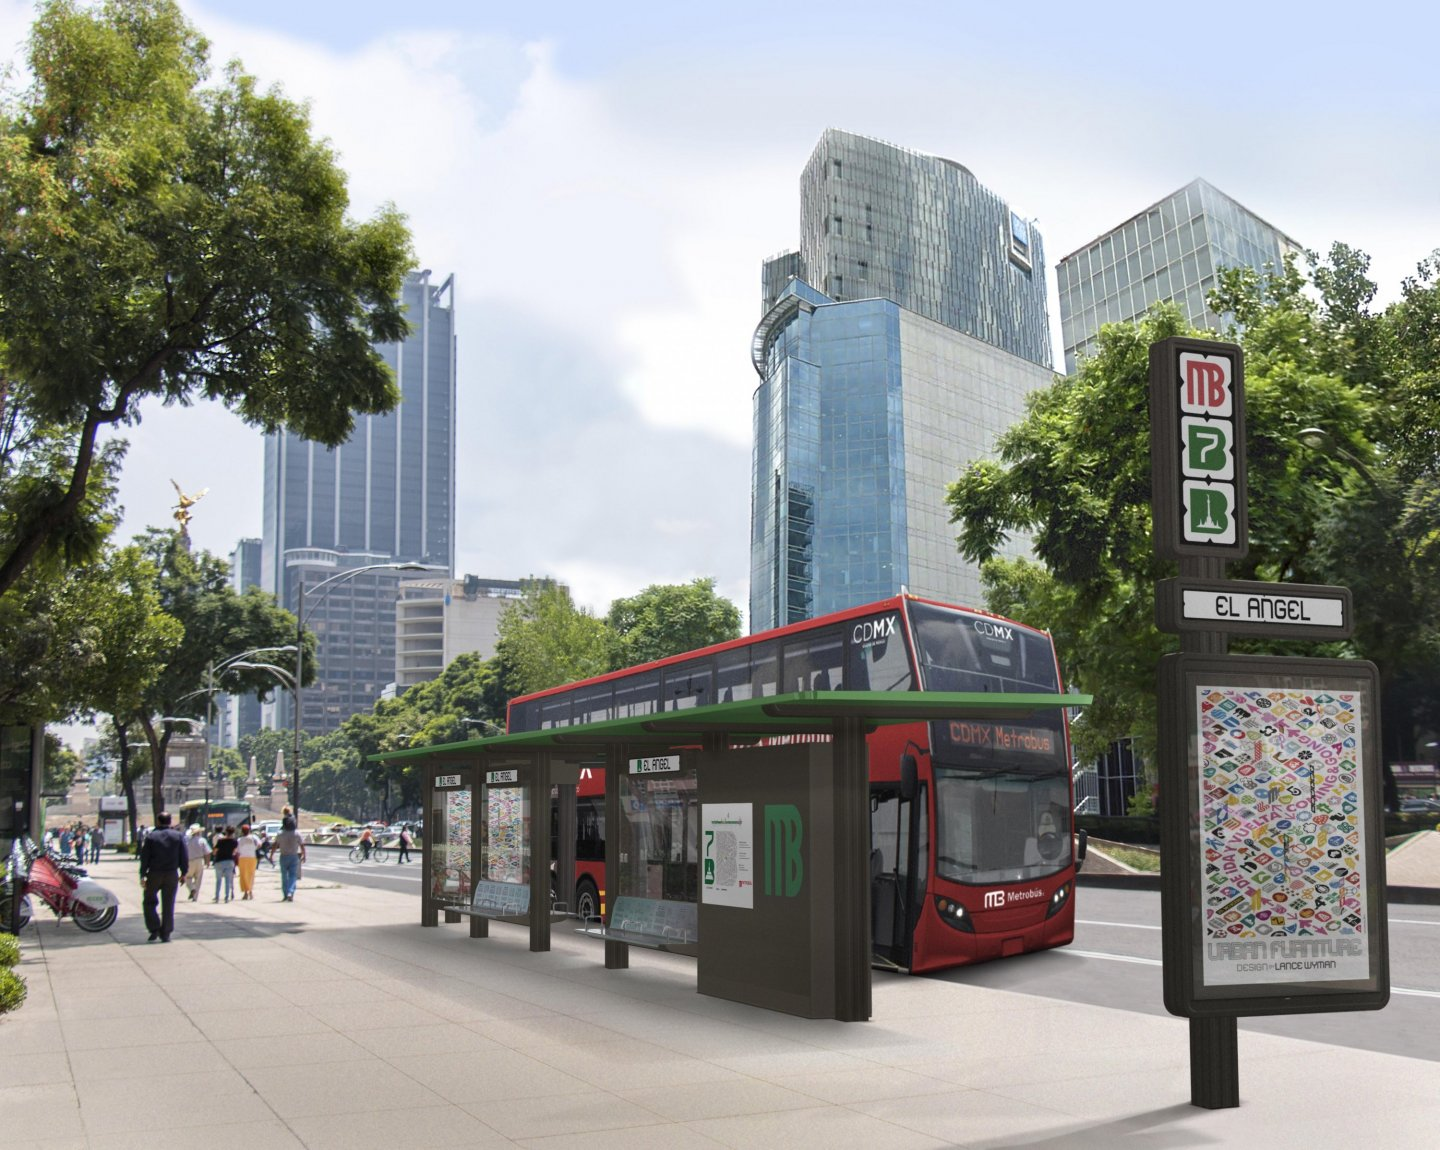 Digital signage news : JCDecaux's 125 bus shelter upgrade